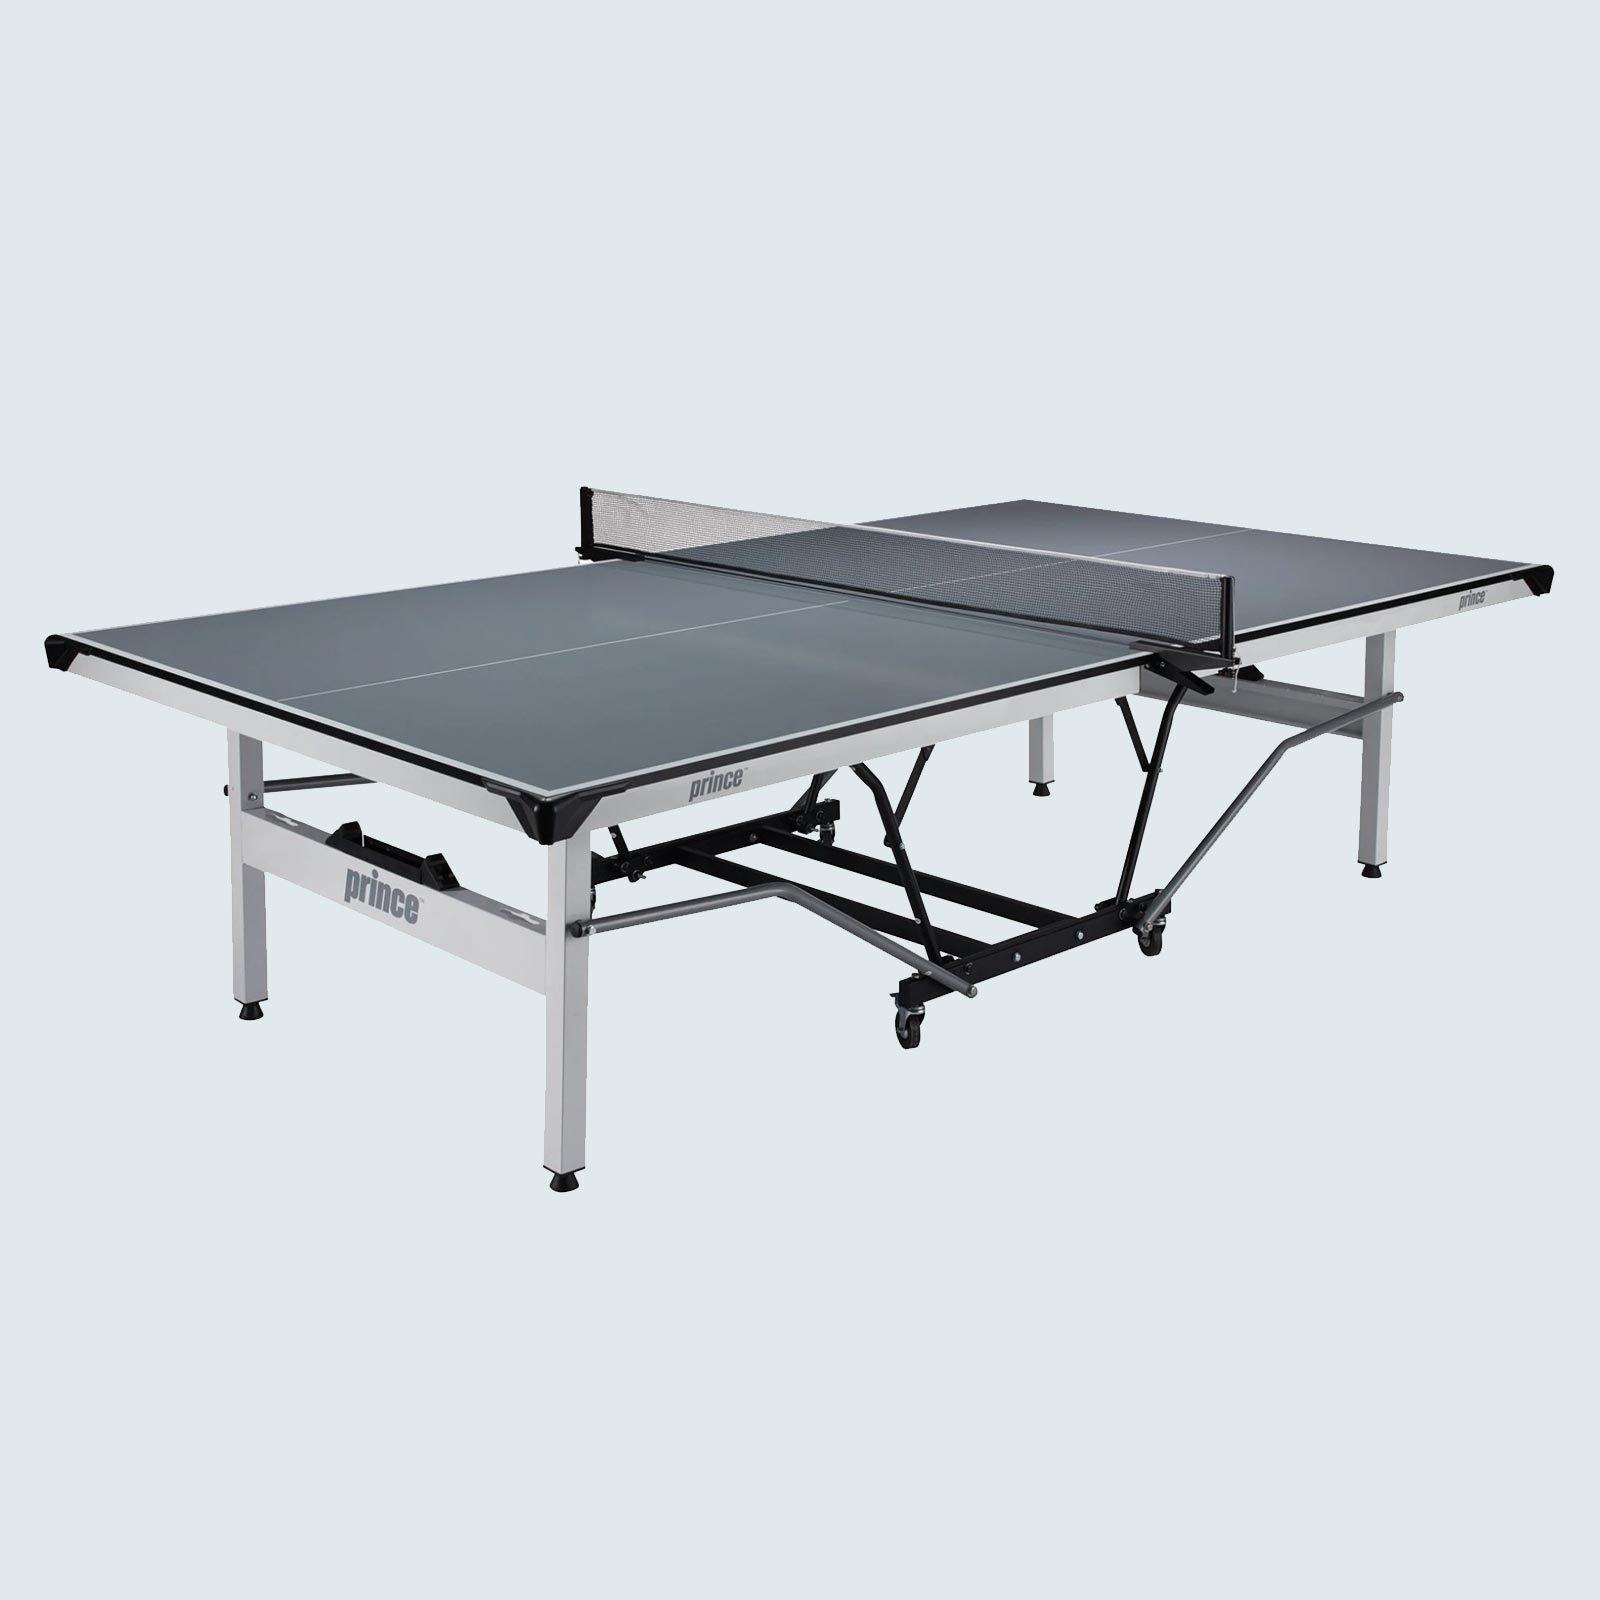 Prince Tournament Indoor Table Tennis tables